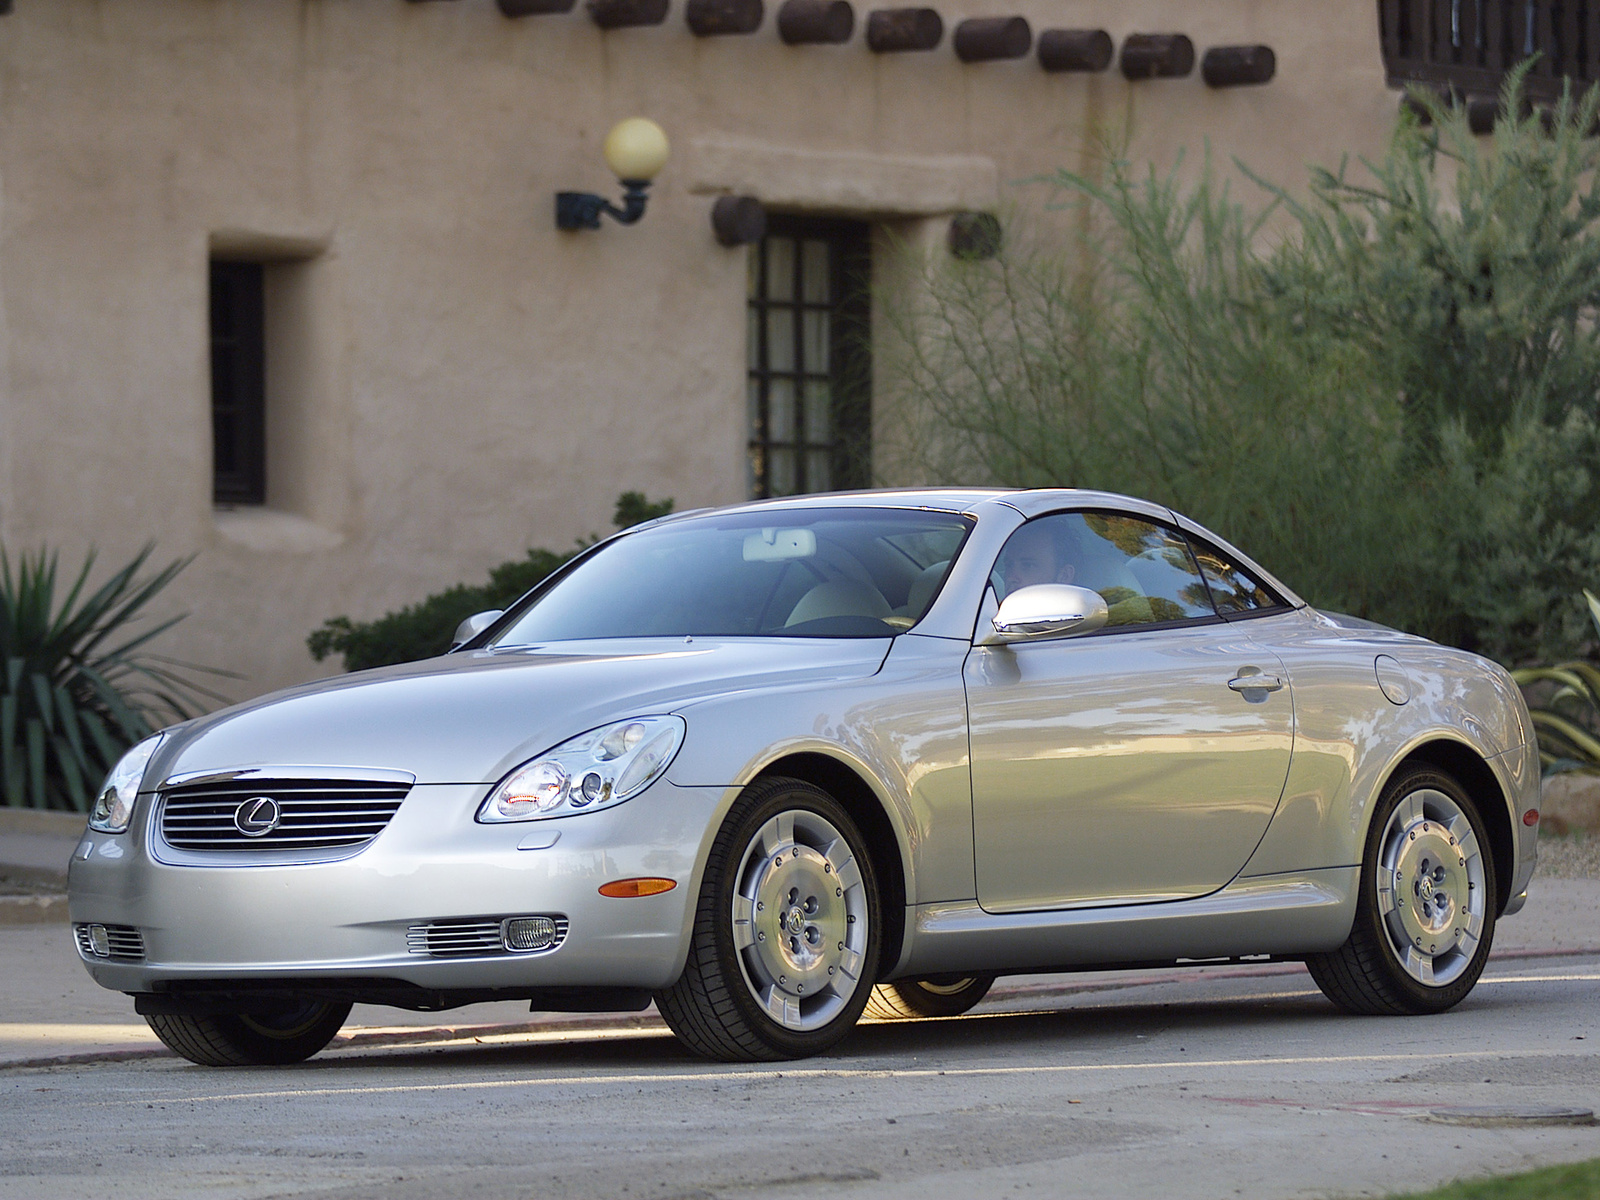 2001 Lexus SC Convertible 2-door